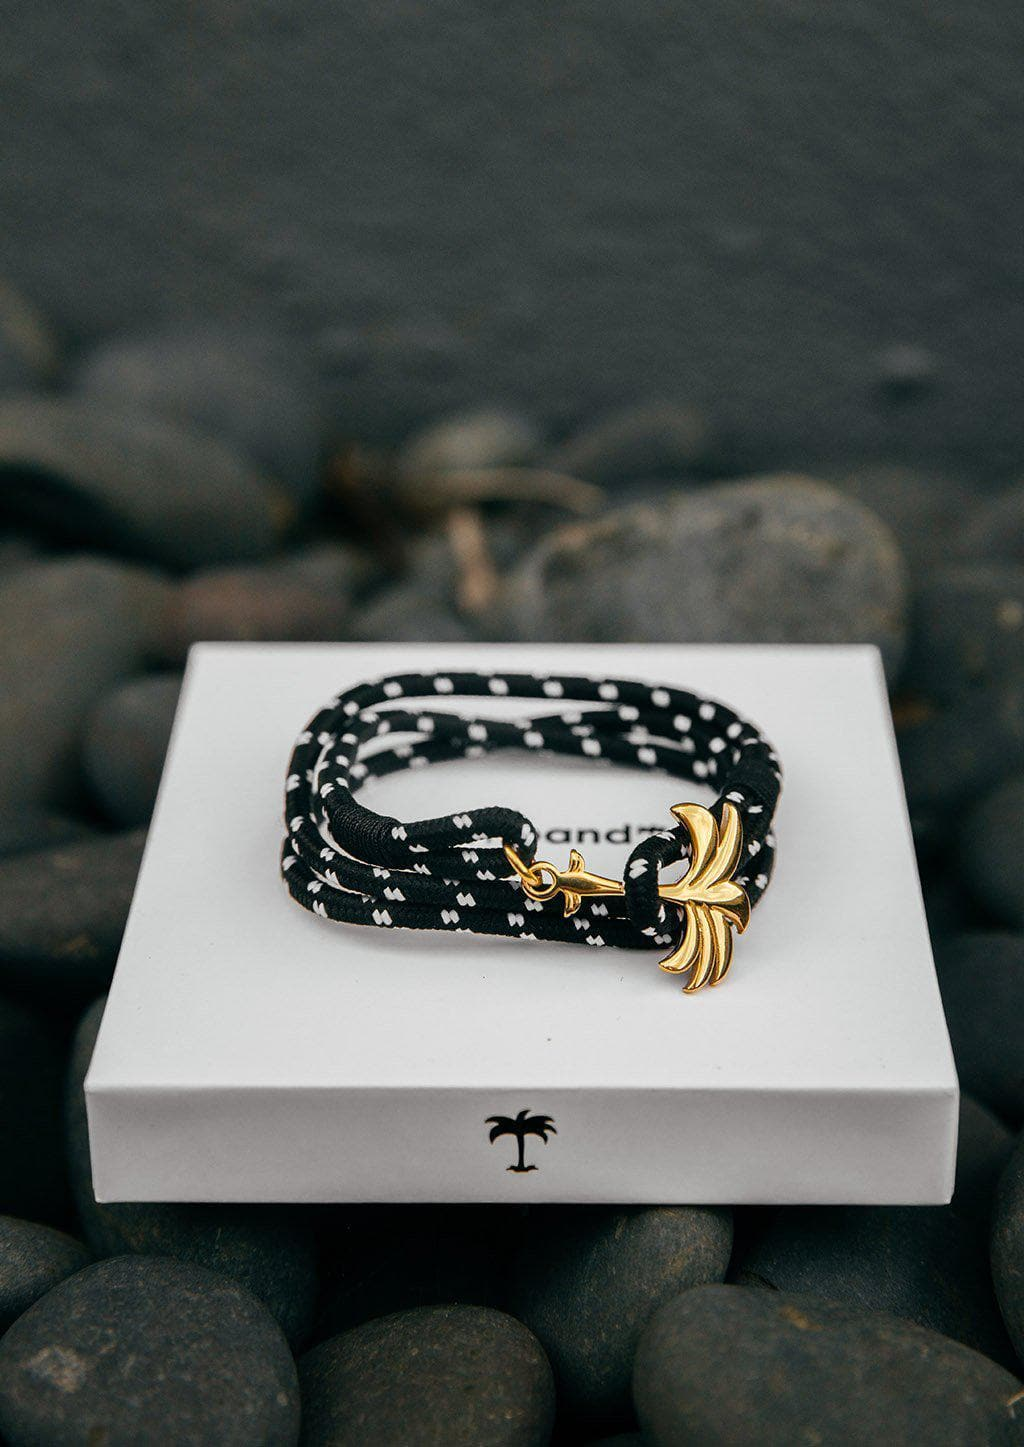 Trophy - Triple - Season two Palm anchor bracelet with black and white nylon band. Close up on box.